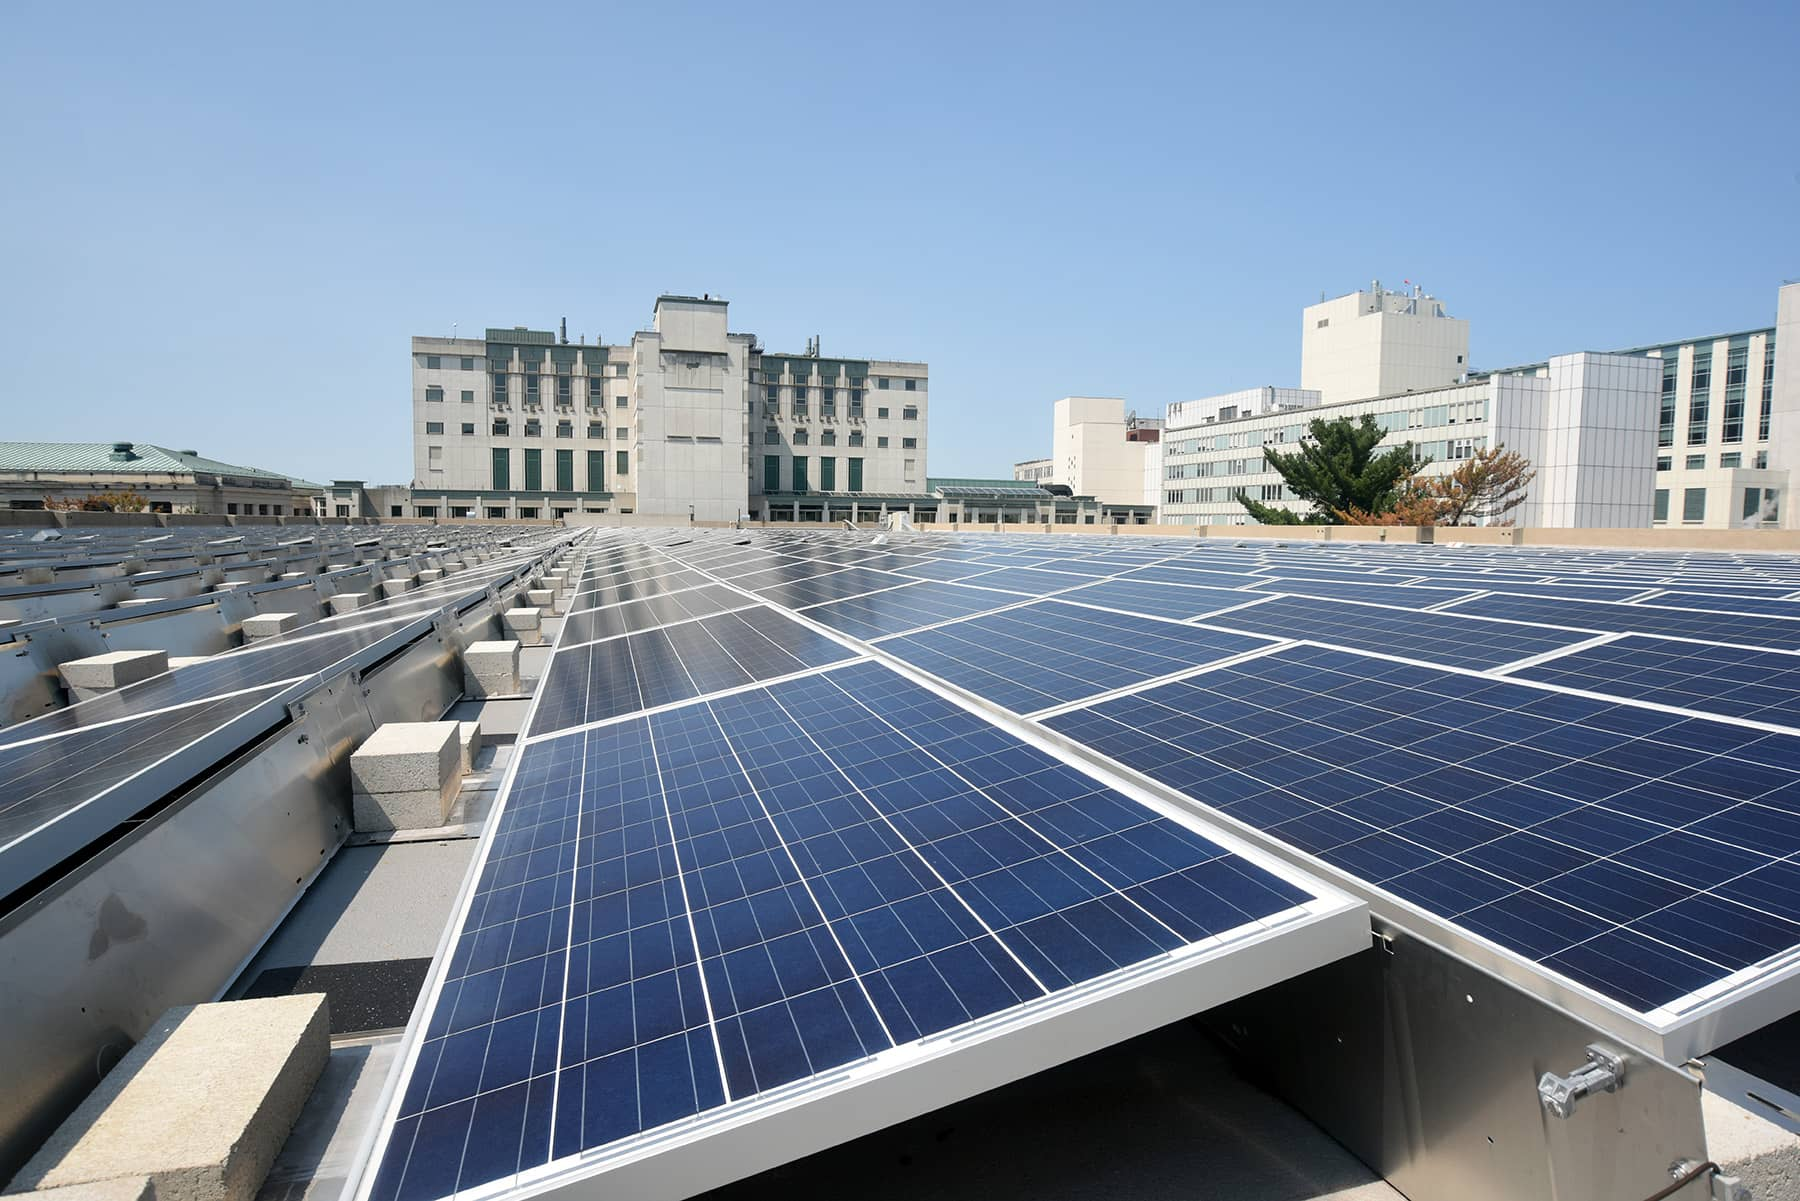 St.-Francis Saint Francis Hospital And Medical Center Adds Rooftop Solar